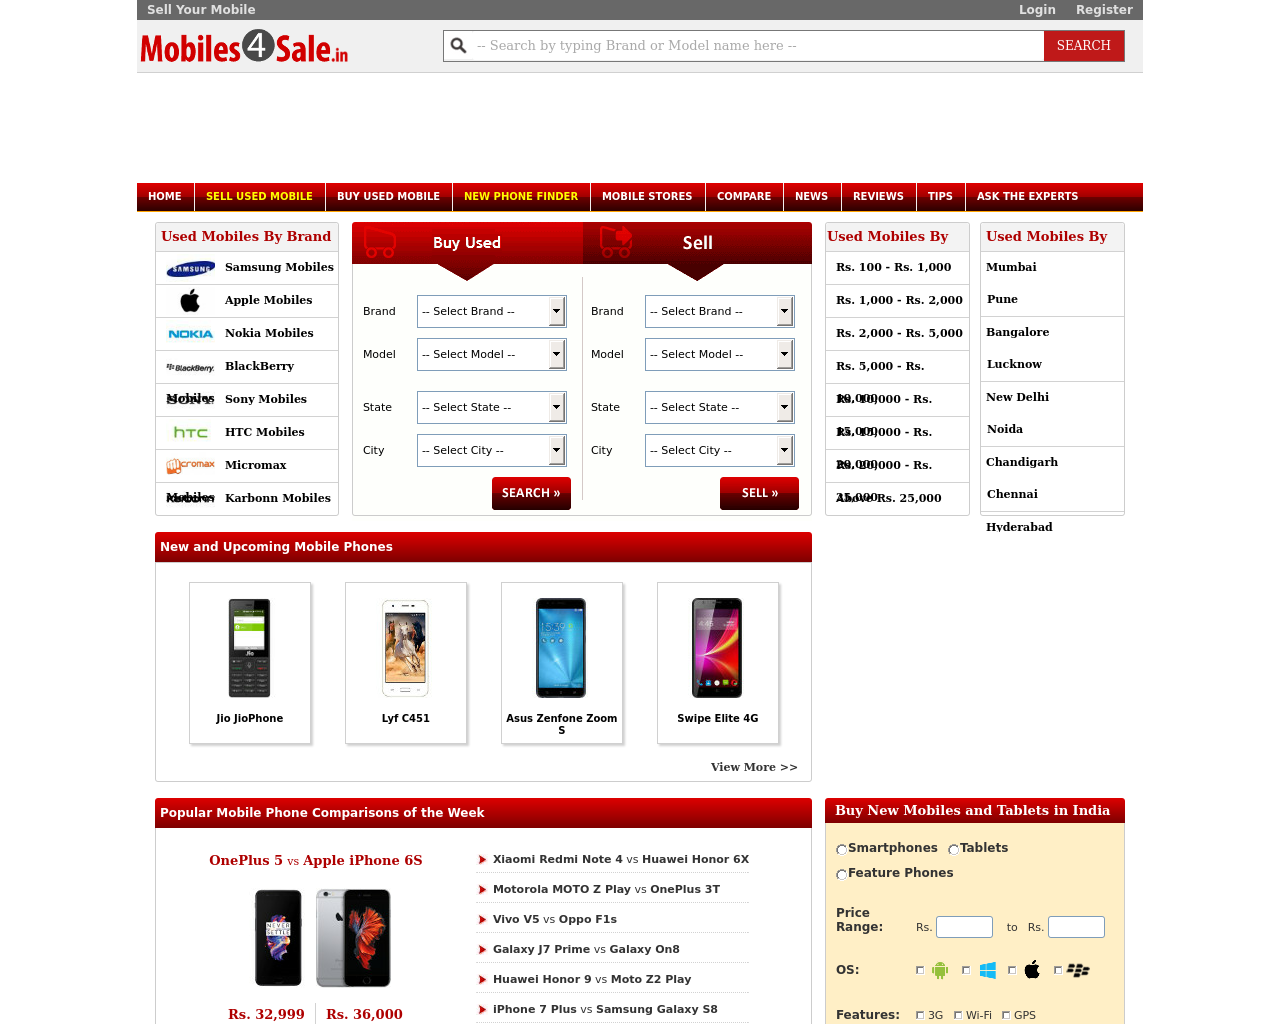 Mobiles4Sale-Advertising-Reviews-Pricing